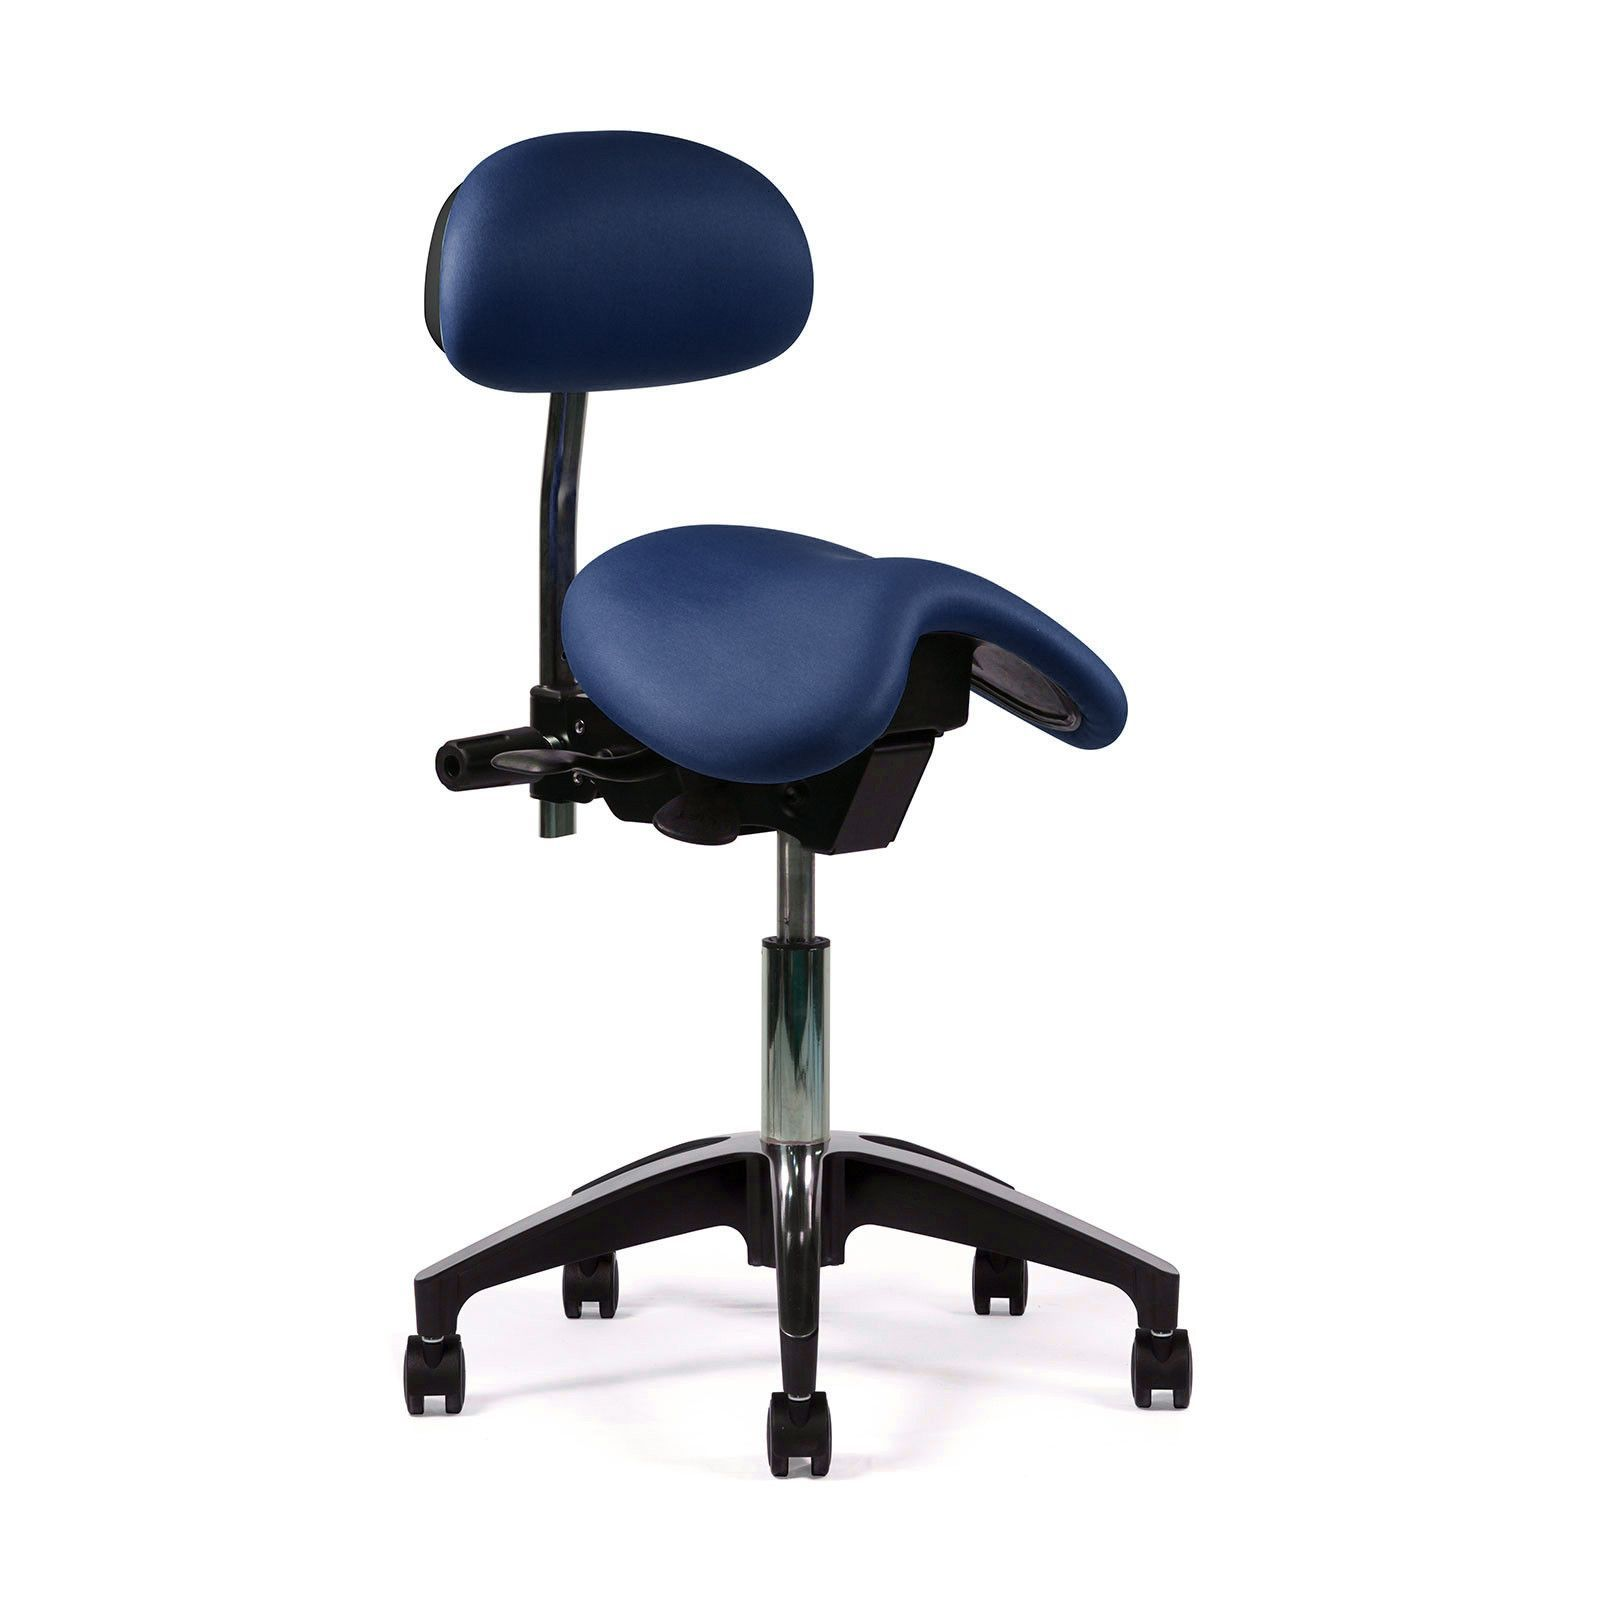 royal dental chair tables and chairs bowery nyc english saddle style with lumbar back office